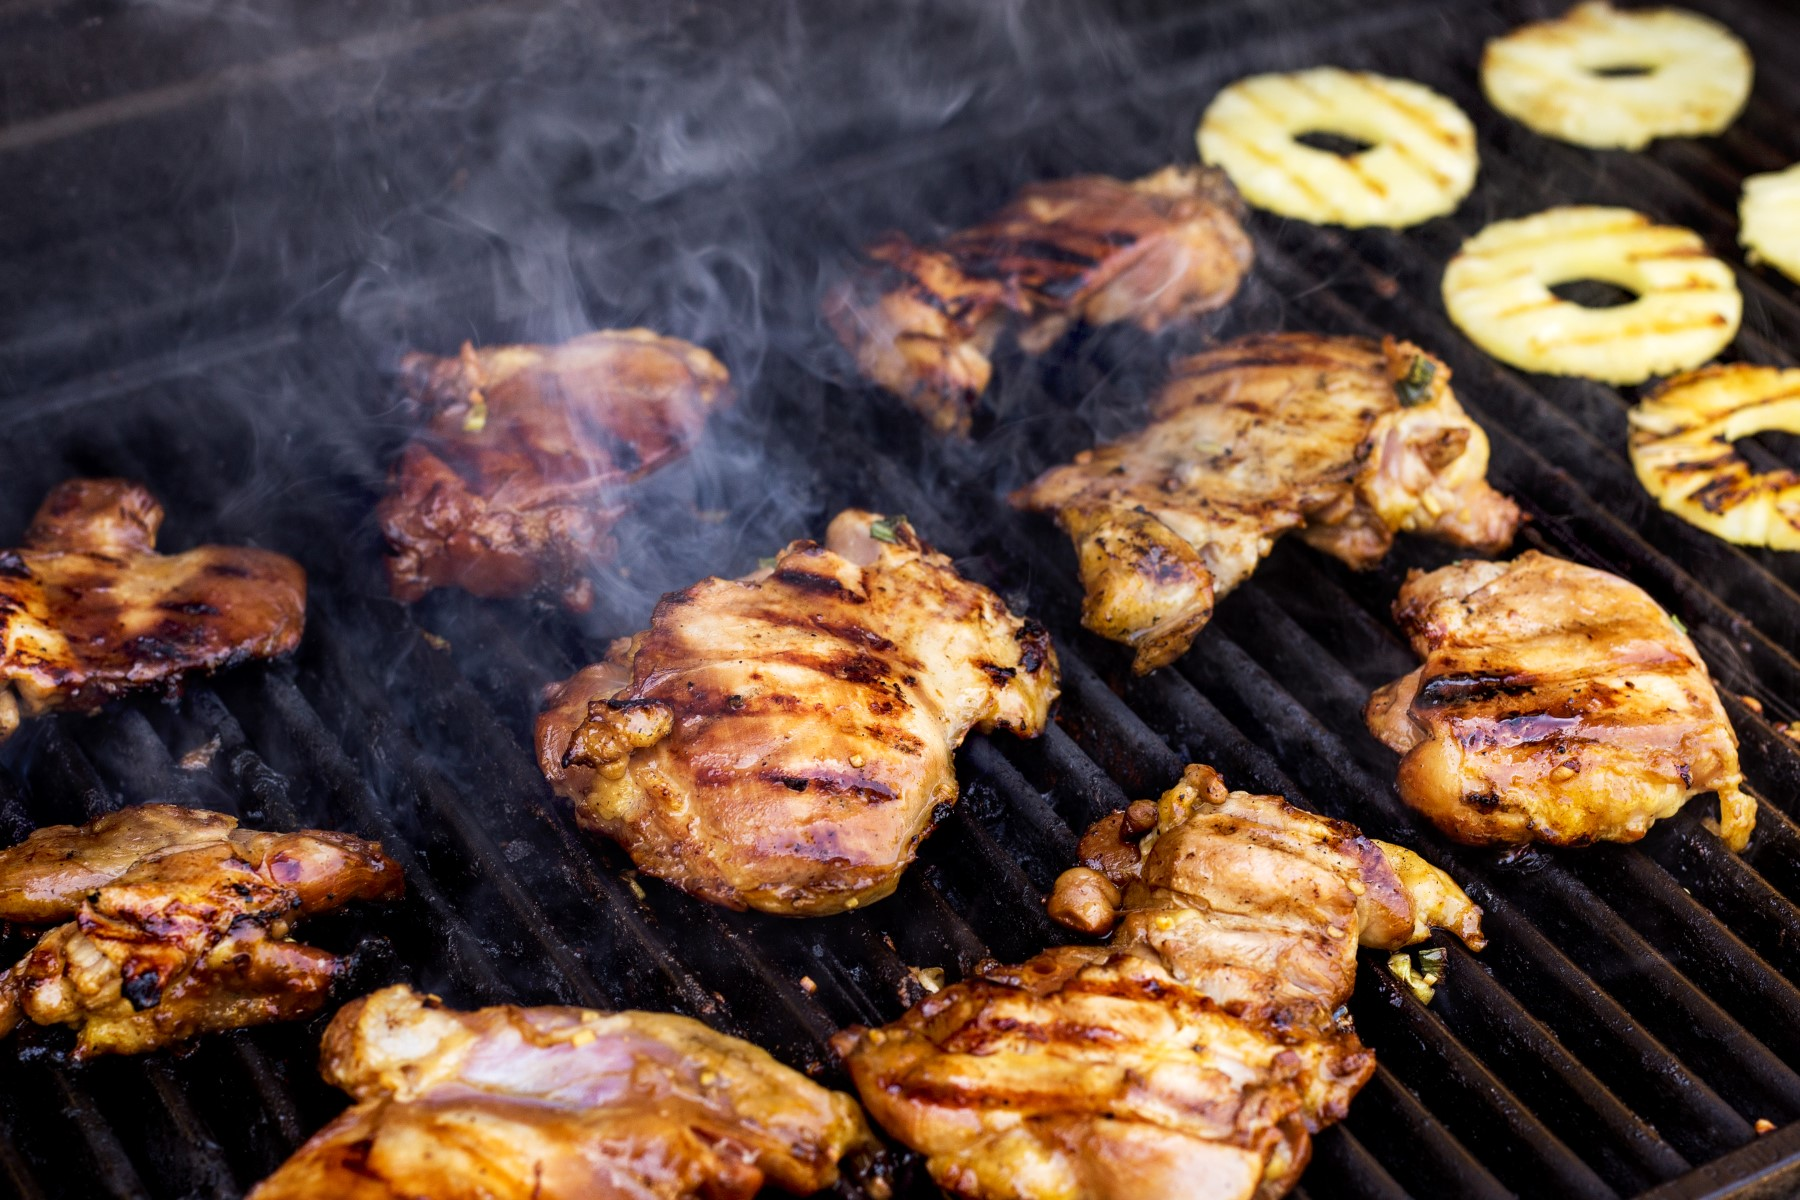 Chicken thighs and pineapple rings grilling on the BBQ.